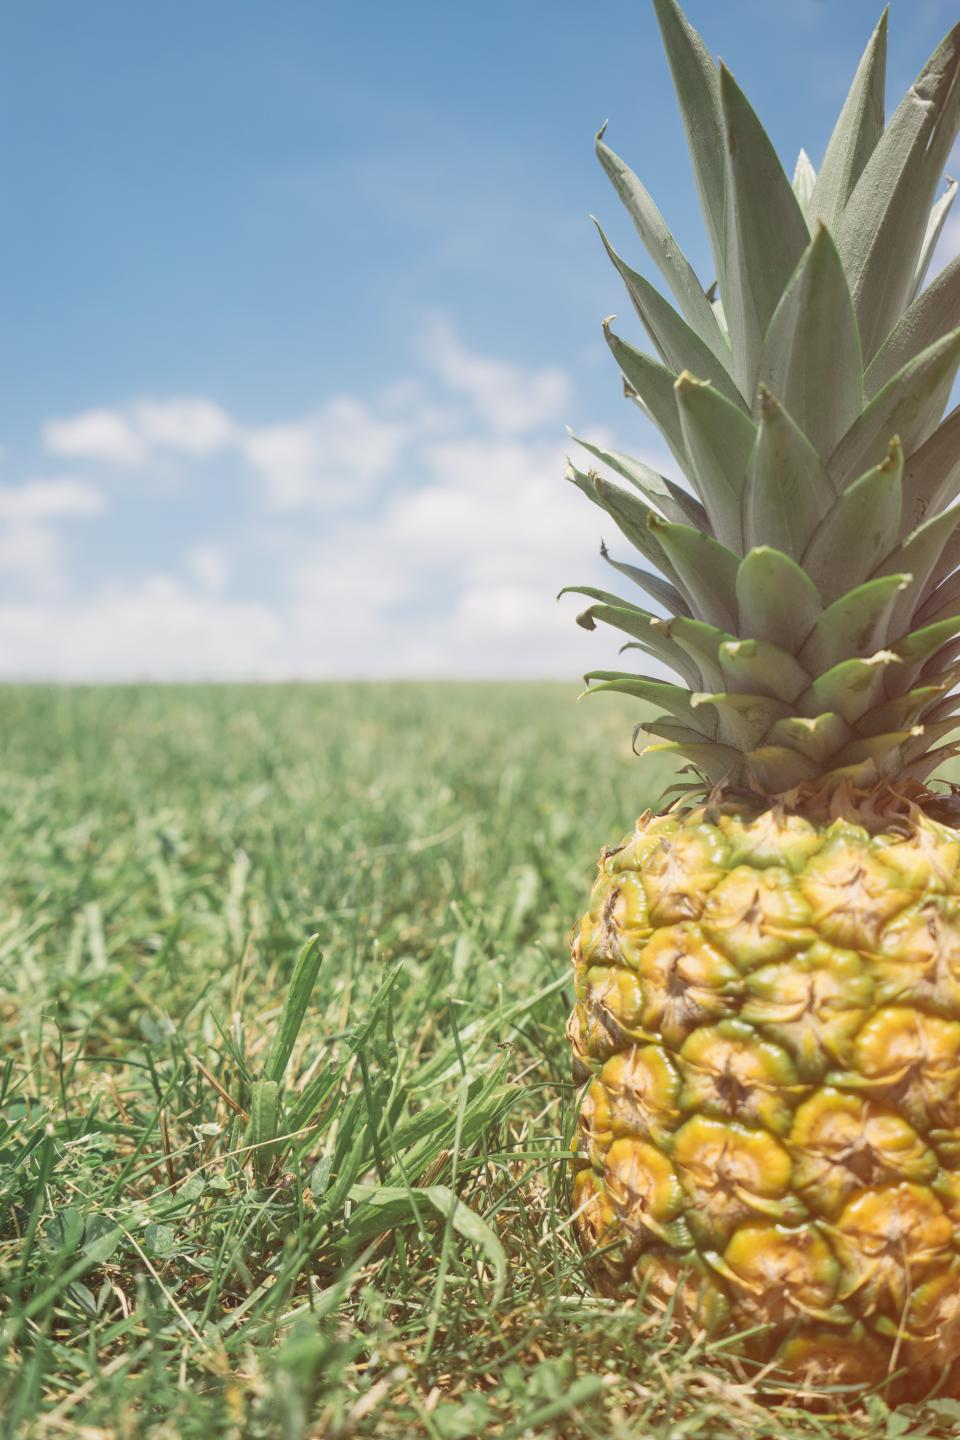 pineapple dessert appetizer fruit juice crop nature green clouds sky